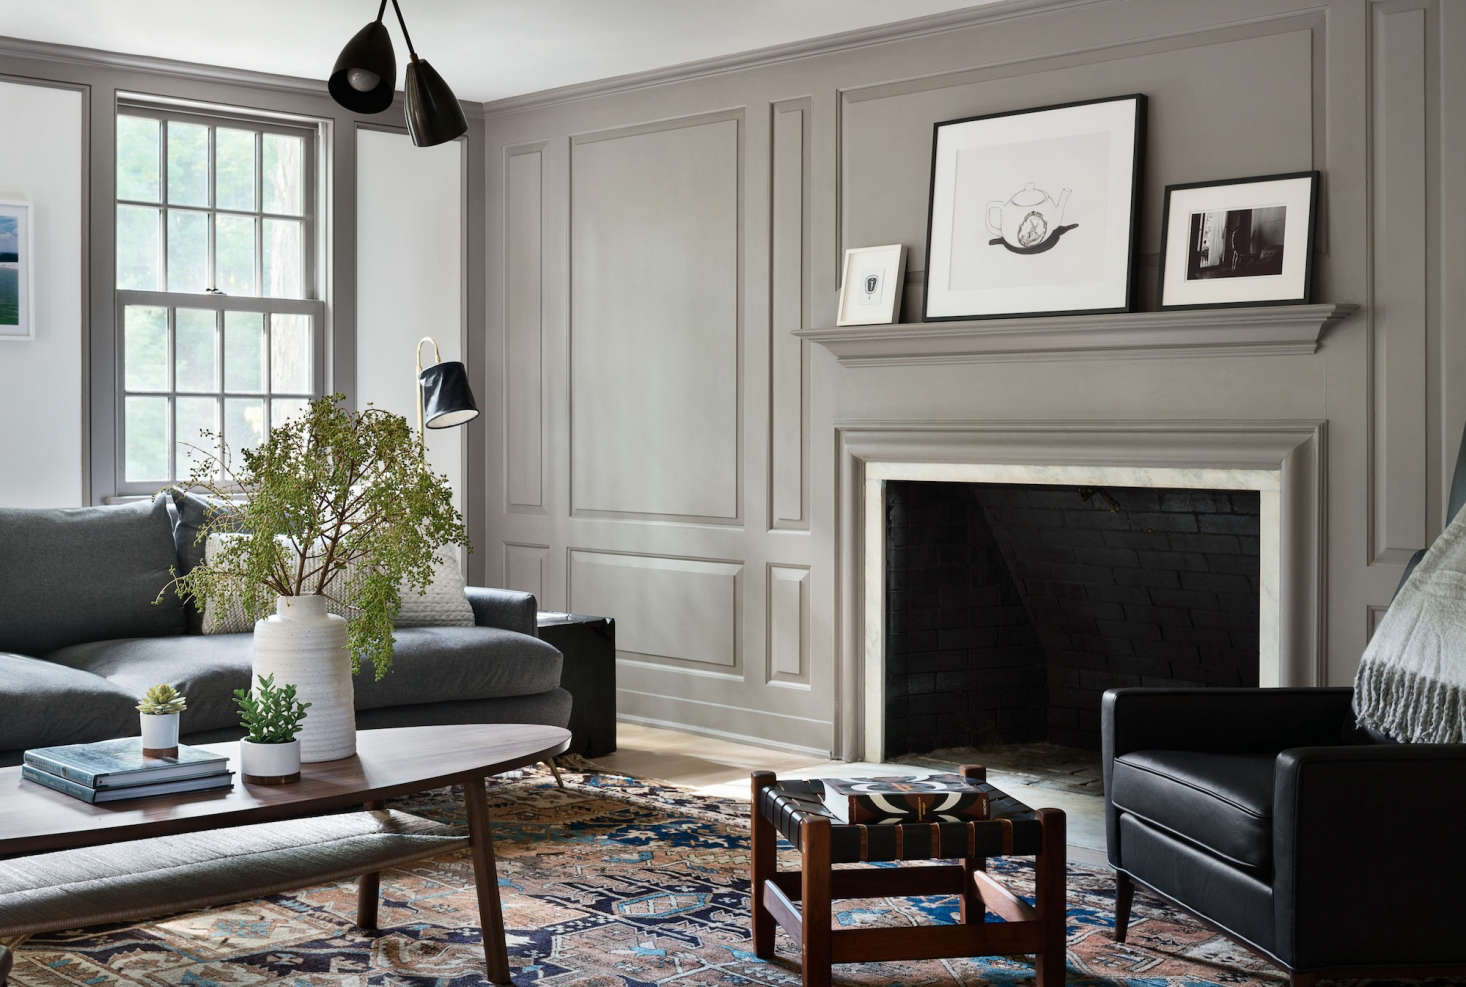 In this Bedford, NY, home, a millwork wall, painted Farrow & Ball's Charleston Gray, adds a bit of lofty elegance, without overwhelming the space. (See Architect Visit: A Renovated Farmhouse in Bedford with Scandinavian Influences.) Photography by Amanda Kirkpatrick, courtesy of Rafe Churchill; styling by Anna Molvik.